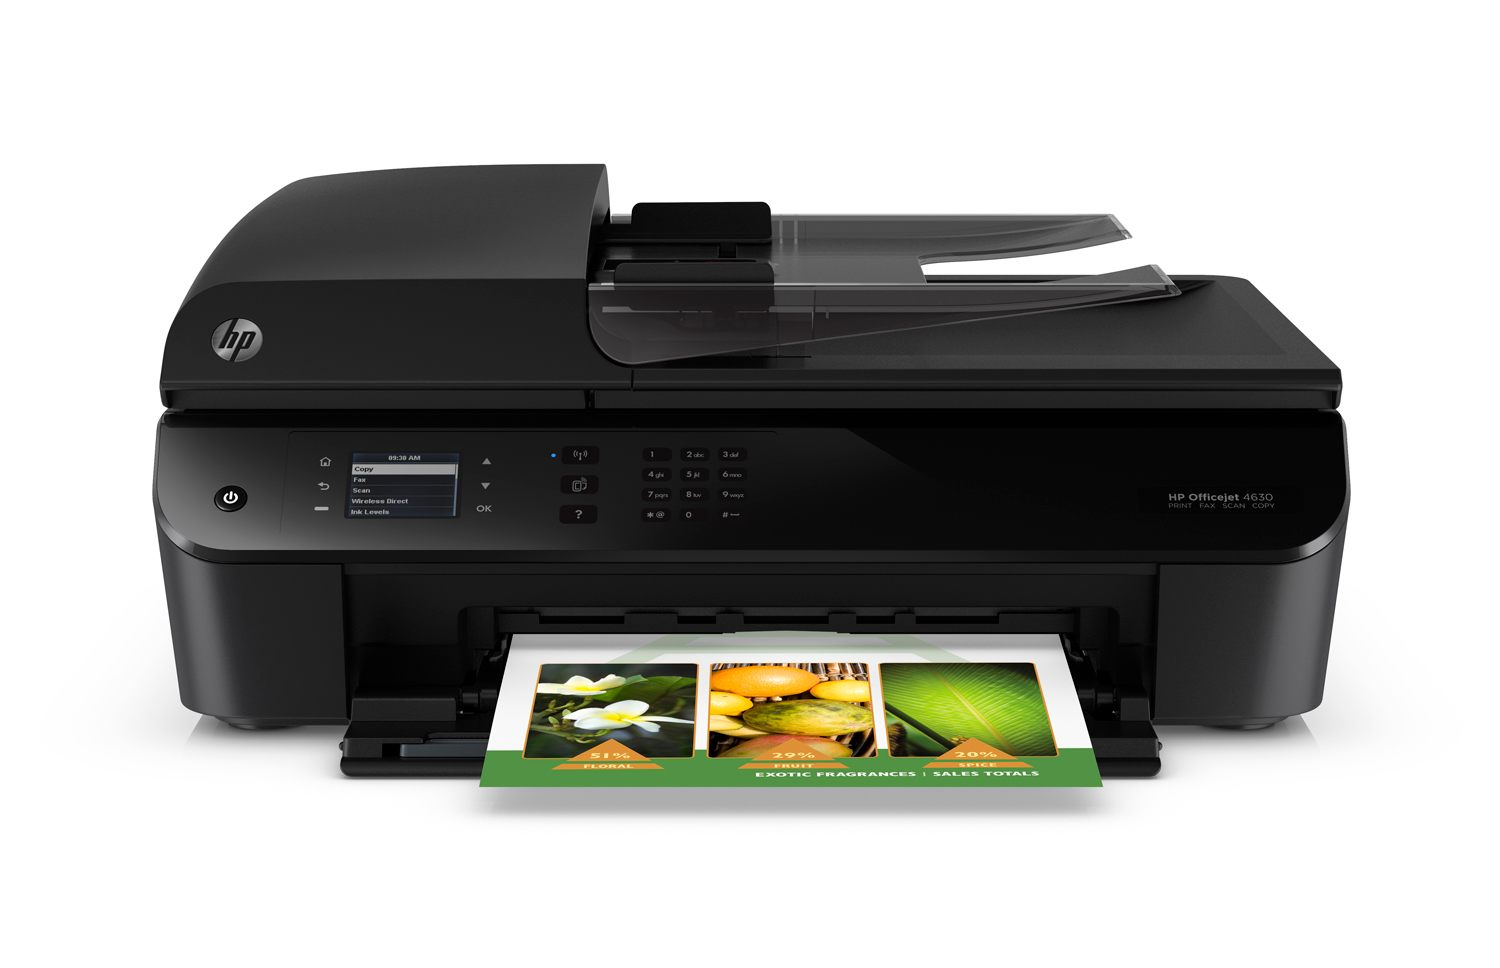 HP Officejet 4635 e-All-in-One Printer (Certified Refurbished) by HP